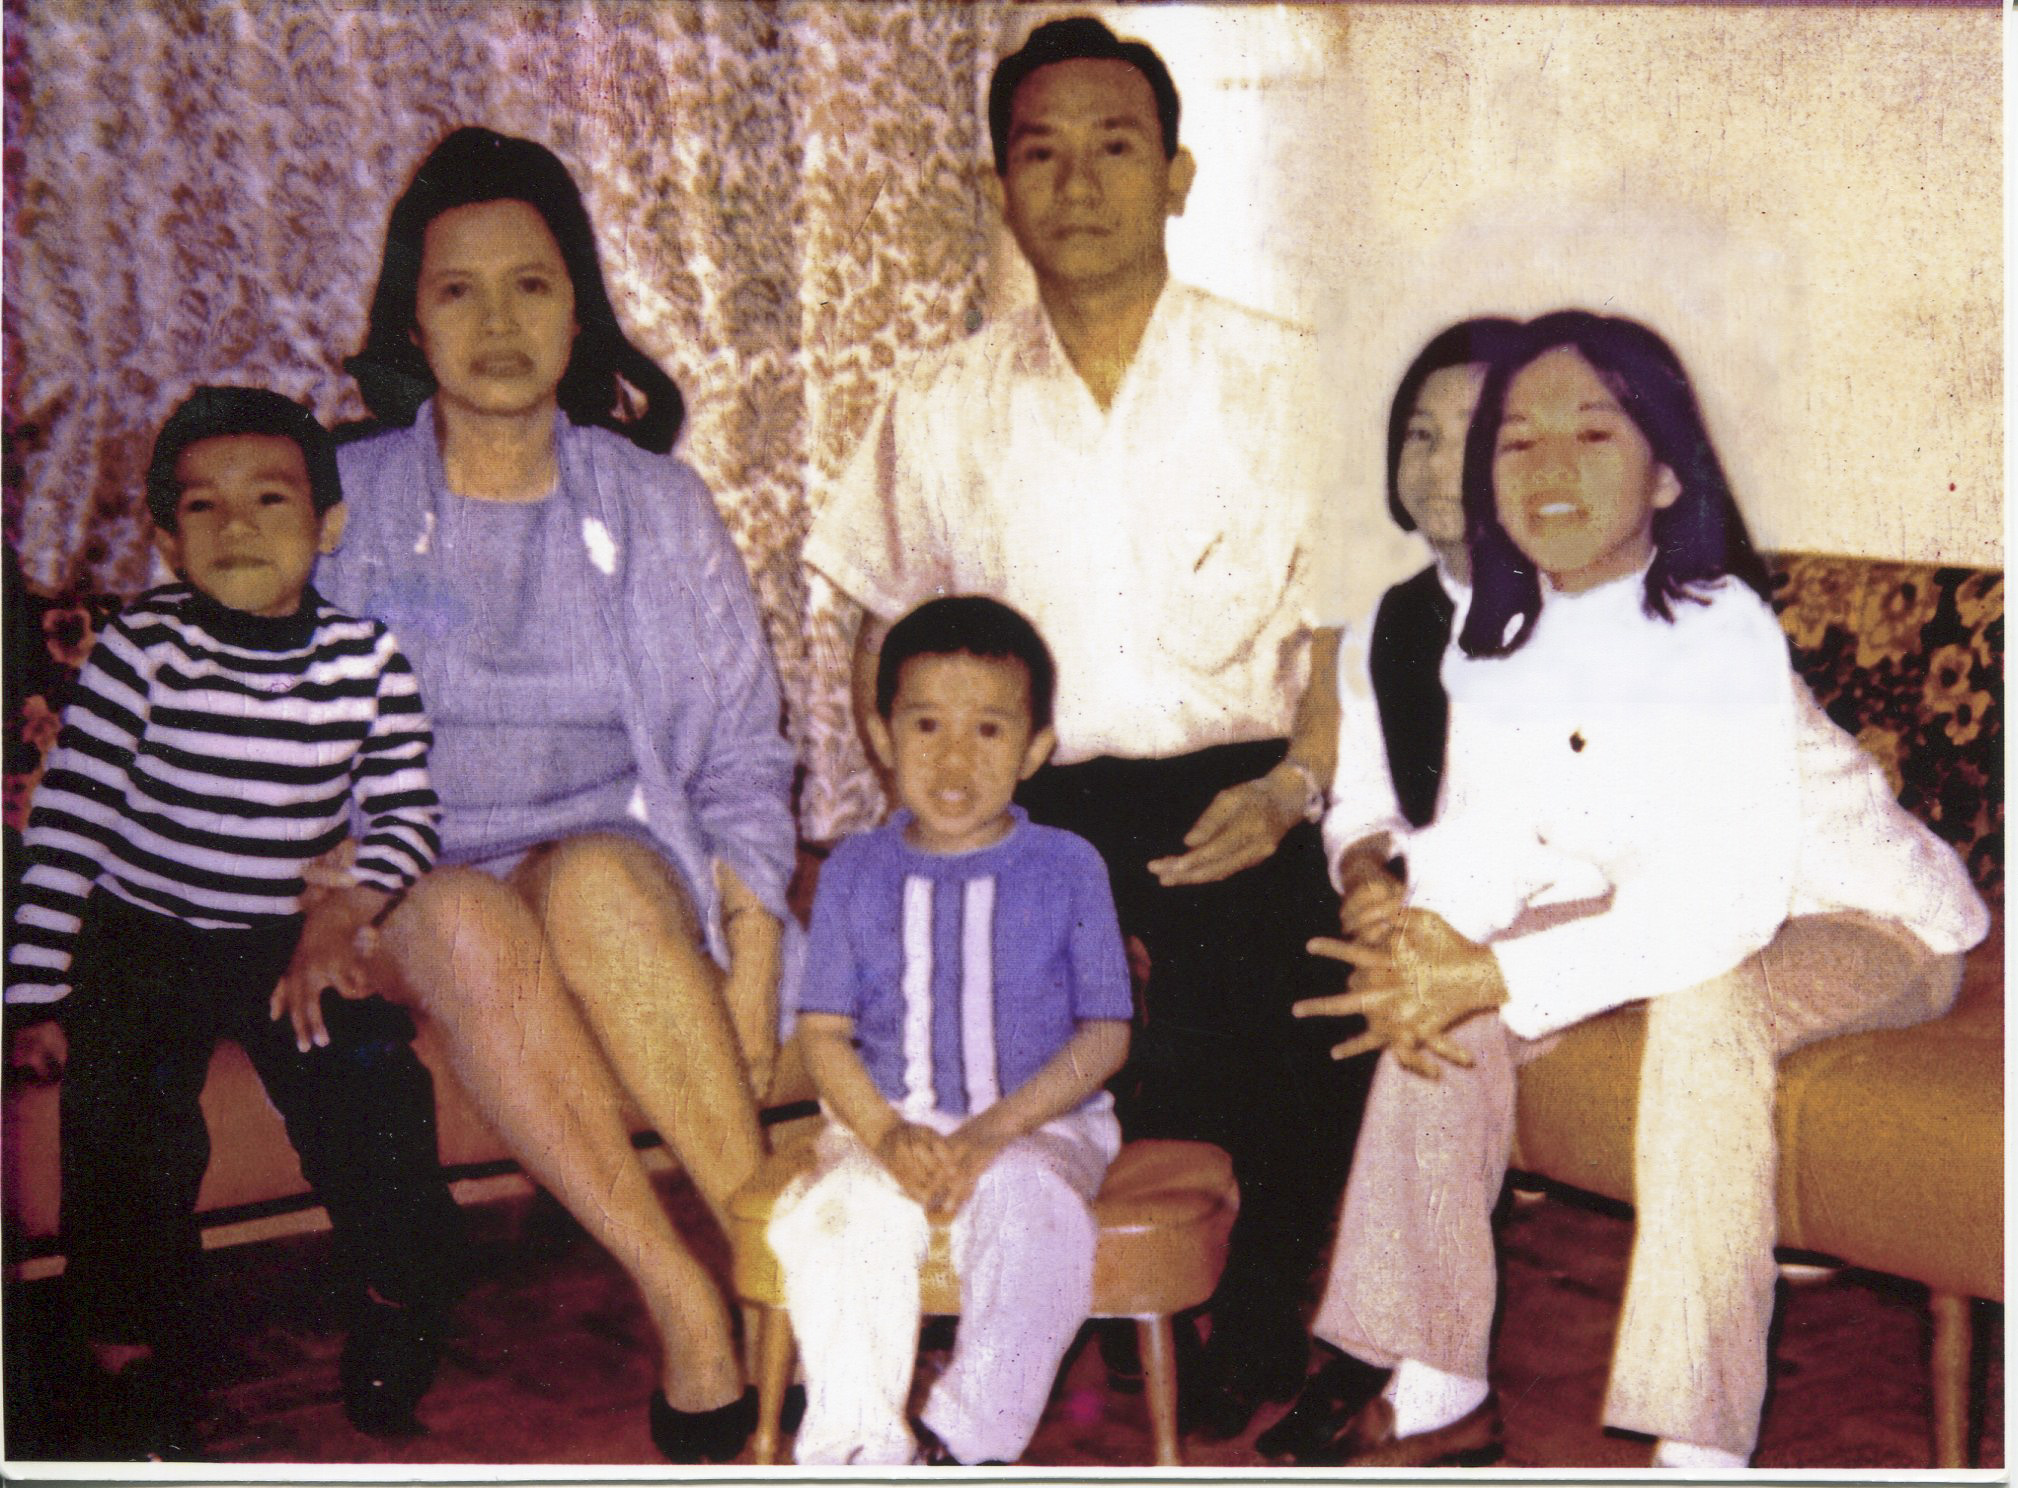 "Photo of Arguelles and family This photo is a copy but the original was taken in 1970. Arguelles acquired it in 2011 from her mother's collection of her father's things (after his death). The photo was taken in Toronto, Canada. Left to right are pictured: Lester (brother), Magdalena (mother), Gene (brother), Jose (dad), Magdalena, Althea (sister). Arguelles said the photo may have been taken at a party because the people pictured all dressed up in ""fineries"" and food was served. Arguelles talked about her family's early years of being immigrants in Canada. The family was intact but her parents still struggled. Arguelles said the photo makes her think of her experiences and struggles in the early years in Canada. Arguelles also highlighted her sister, who wrote a poem about Canada that won an award. Her sister's poem was read over the school intercom and used an Indian word for the title, which sticks out for Arguelles. She was proud of her sister. They all struggled though they were different. Arguelles said she knows it was hard on her parents.   Any views, findings, conclusions, or recommendations expressed in this story do not necessarily represent those of the National Endowment for the Humanities. [Copyright] Field Museum of Natural History - CC BY-NC"